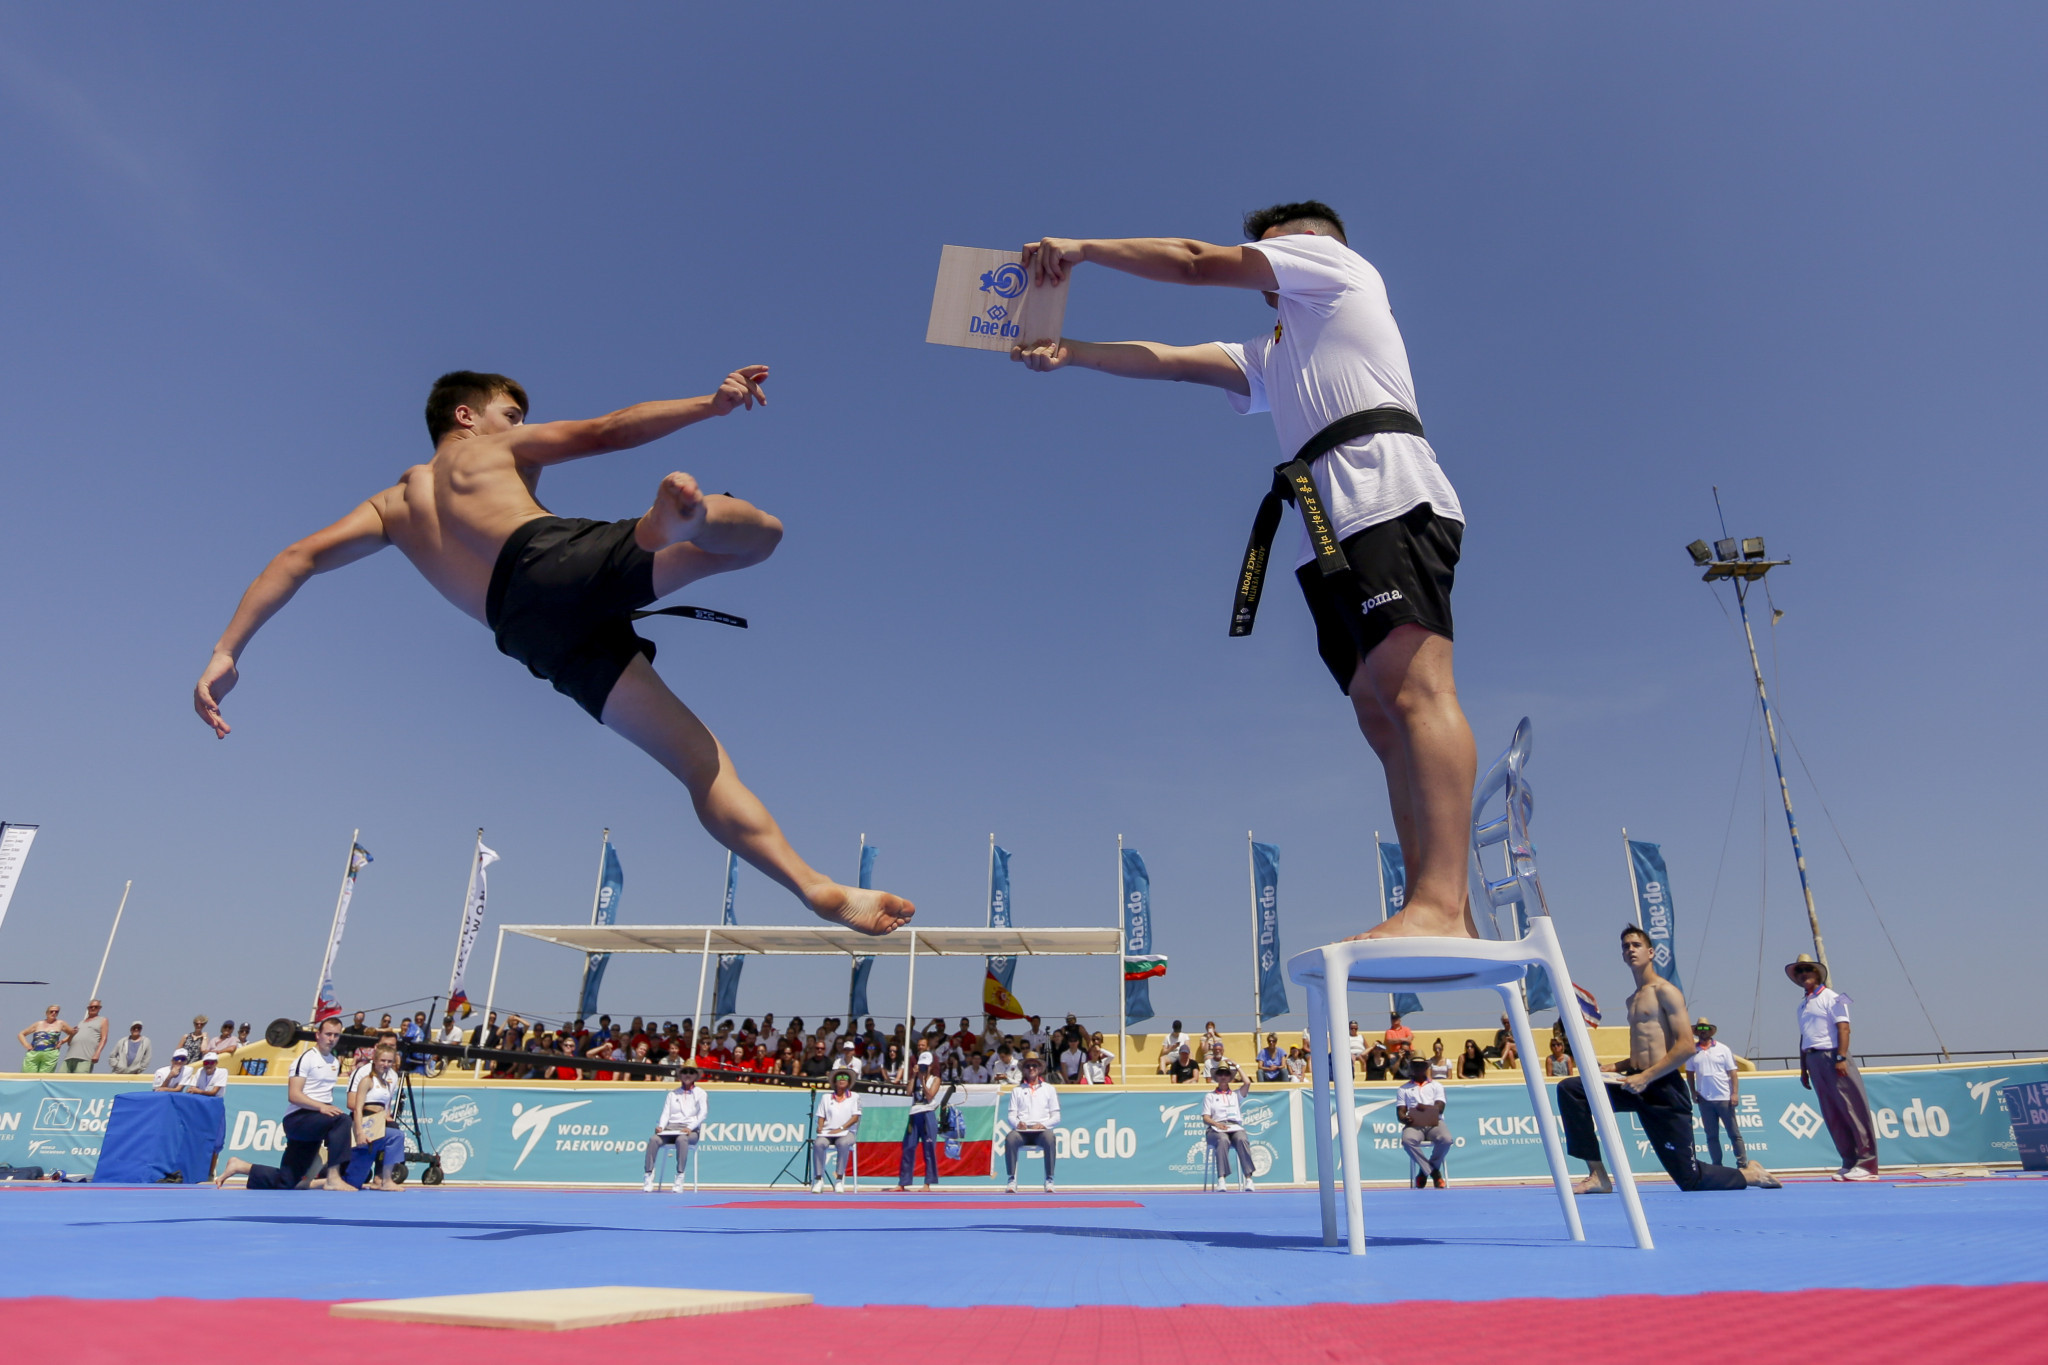 Thailand claimed five gold medals on the third day of competition at the World Taekwondo Beach Championships in Rhodes ©World Taekwondo